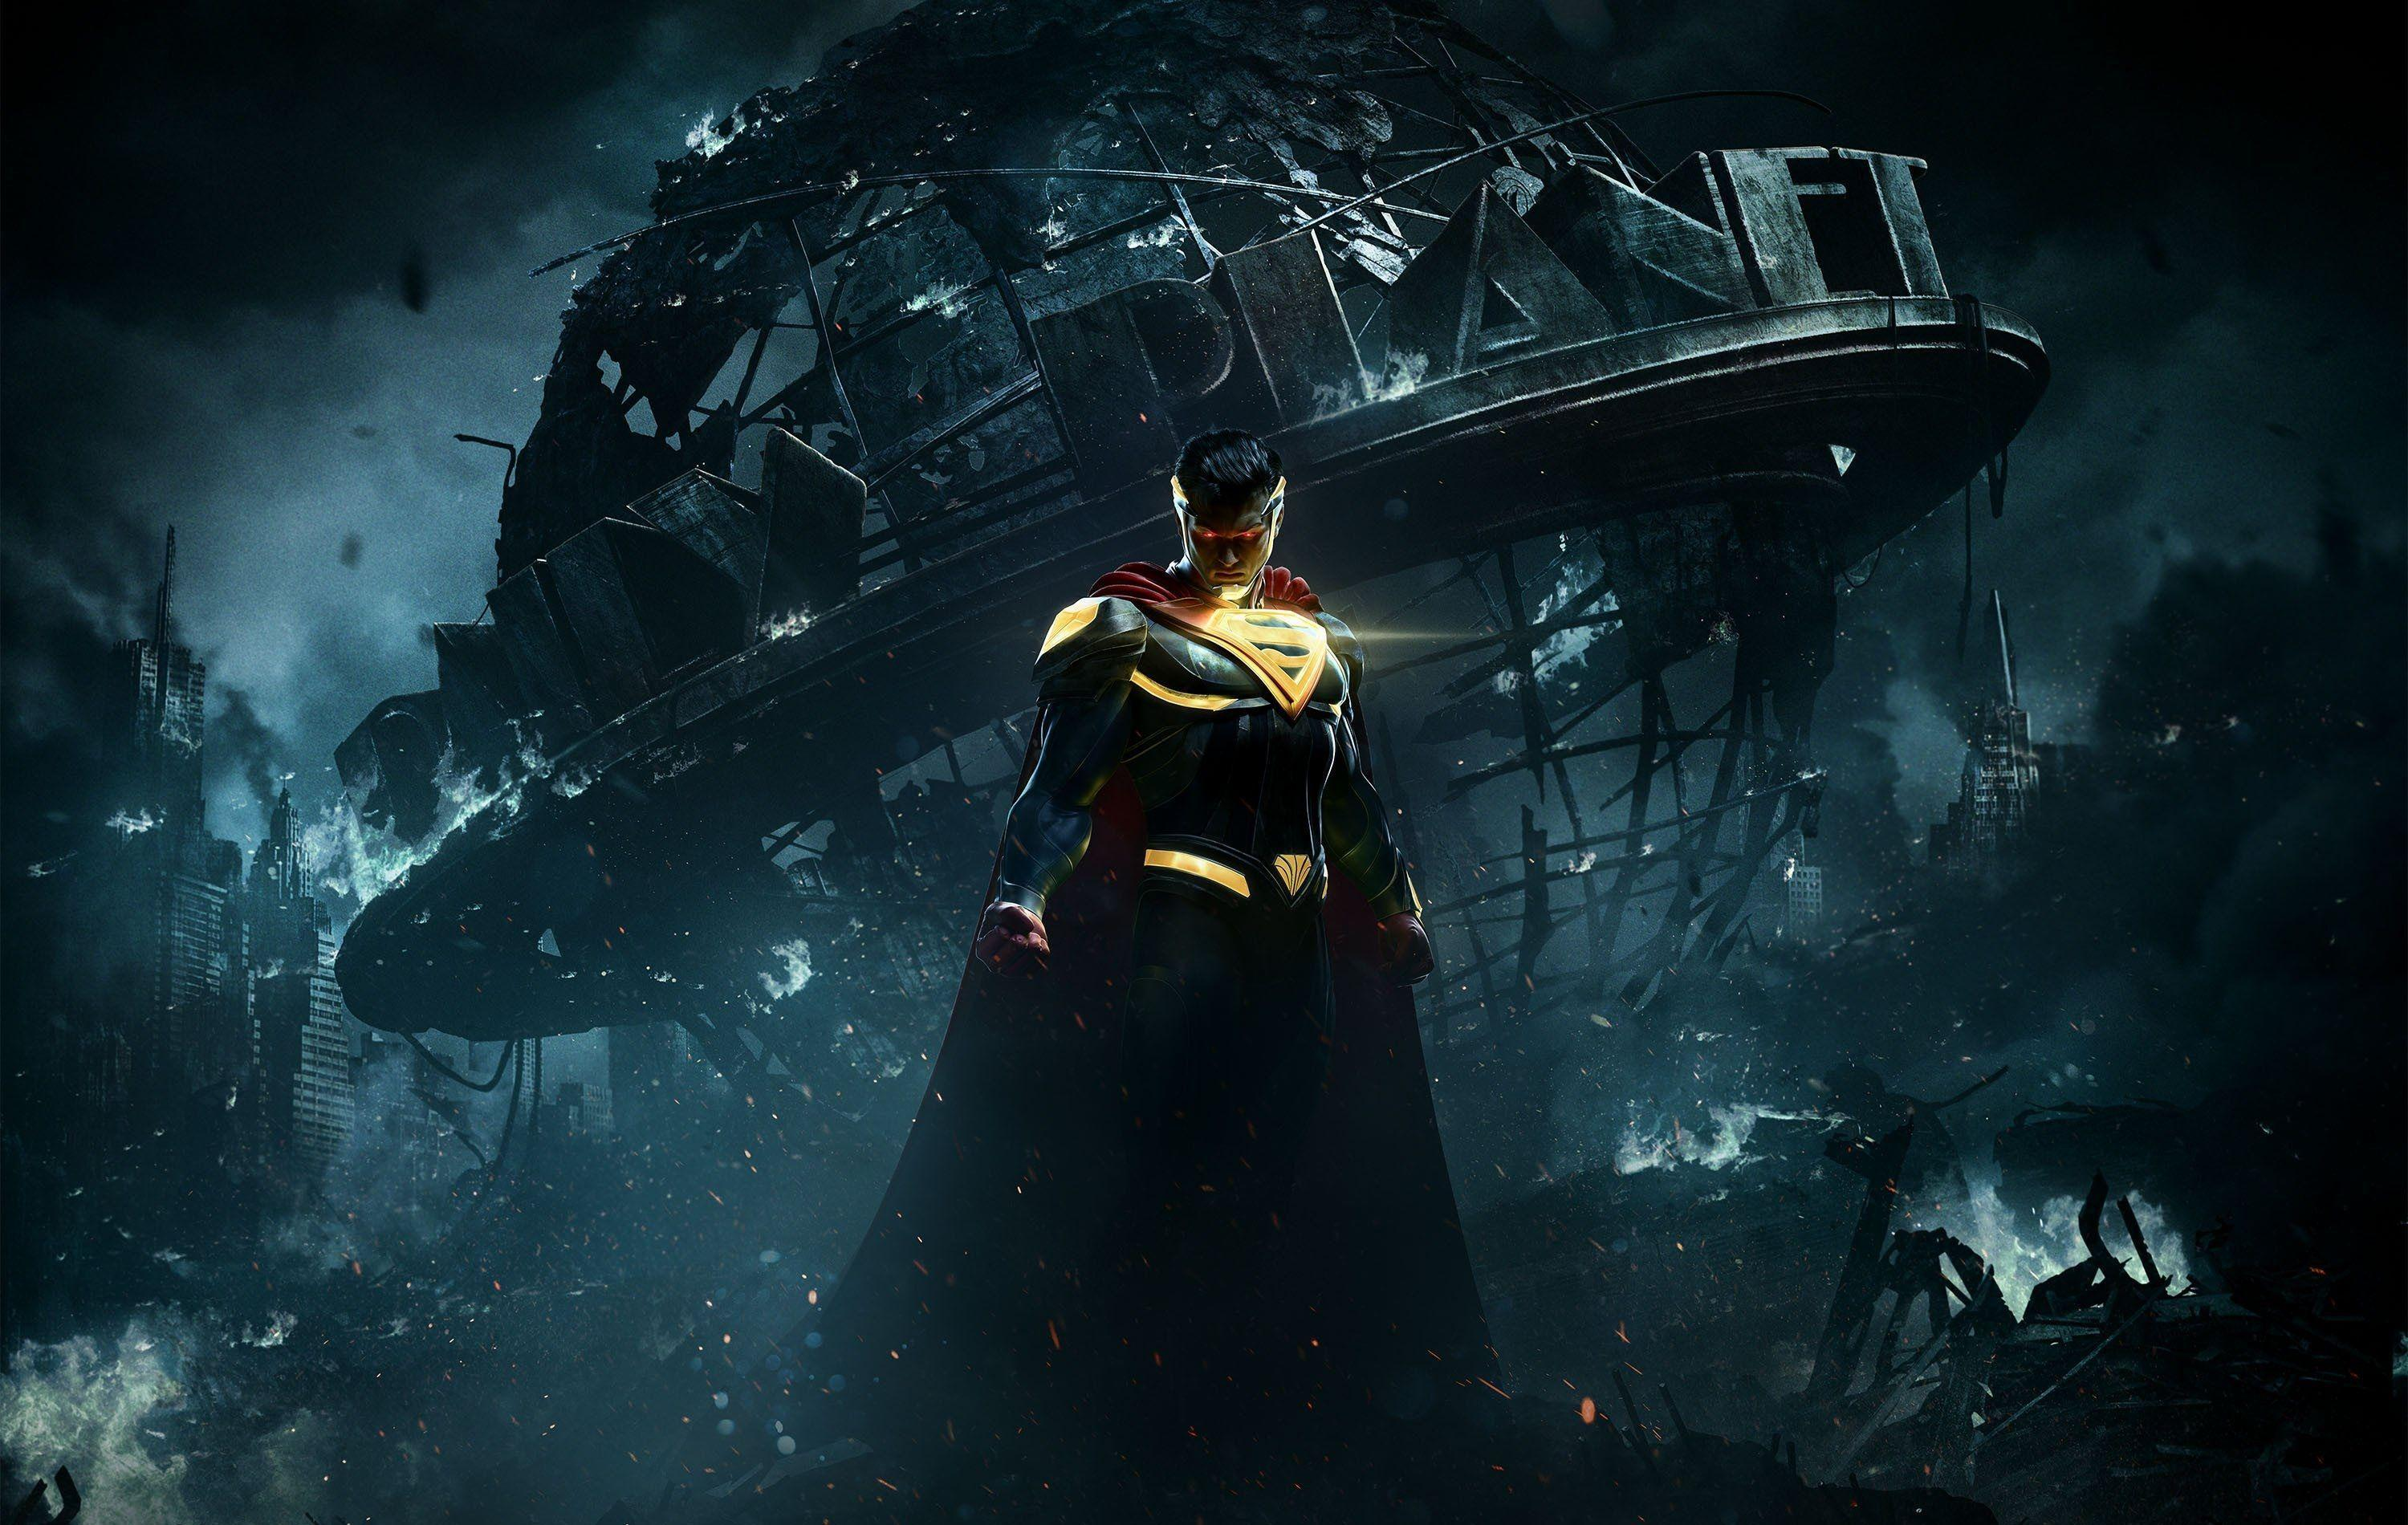 Injustice 2 Wallpapers Top Free Injustice 2 Backgrounds